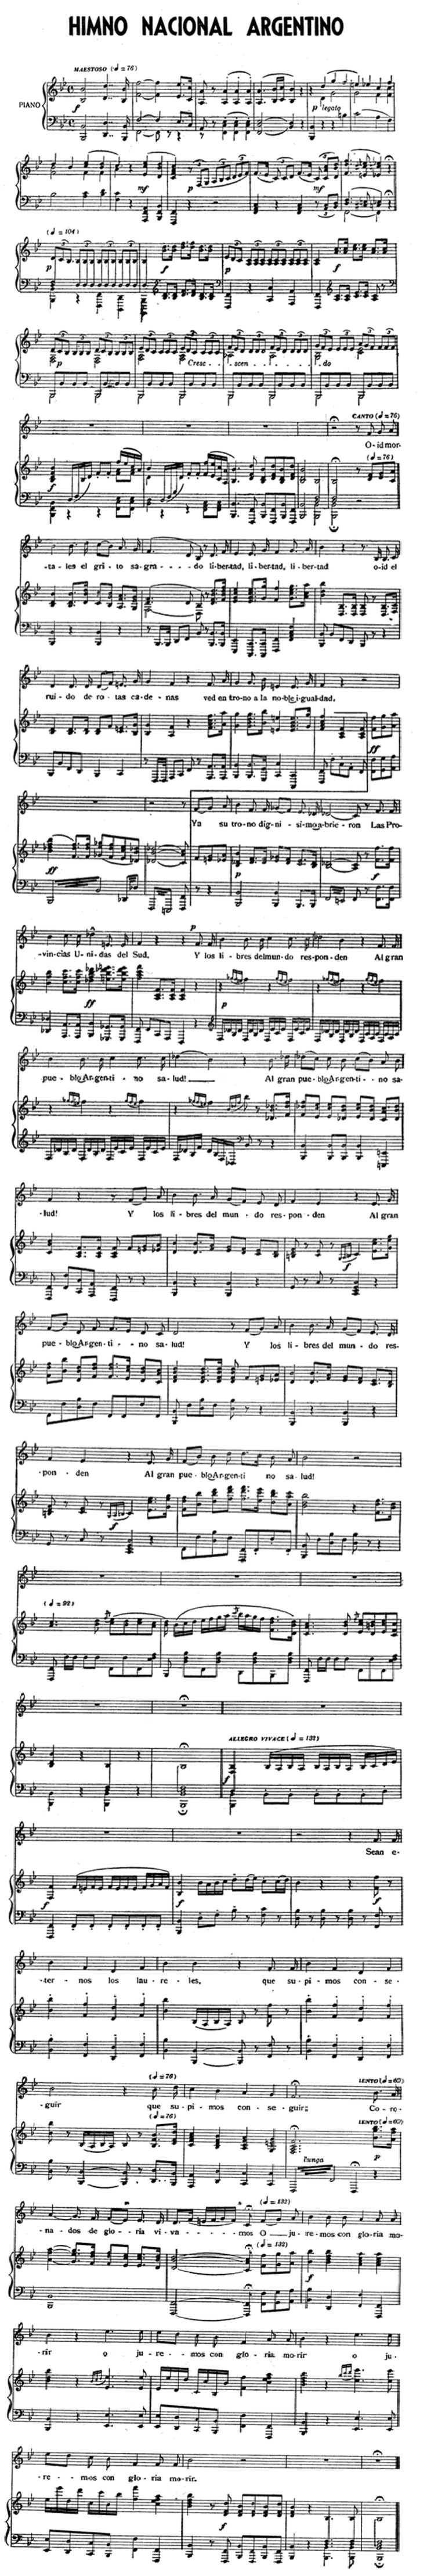 Partitura del Himno Nacional Argentino / Sheet Music of the Argentine National Anthem